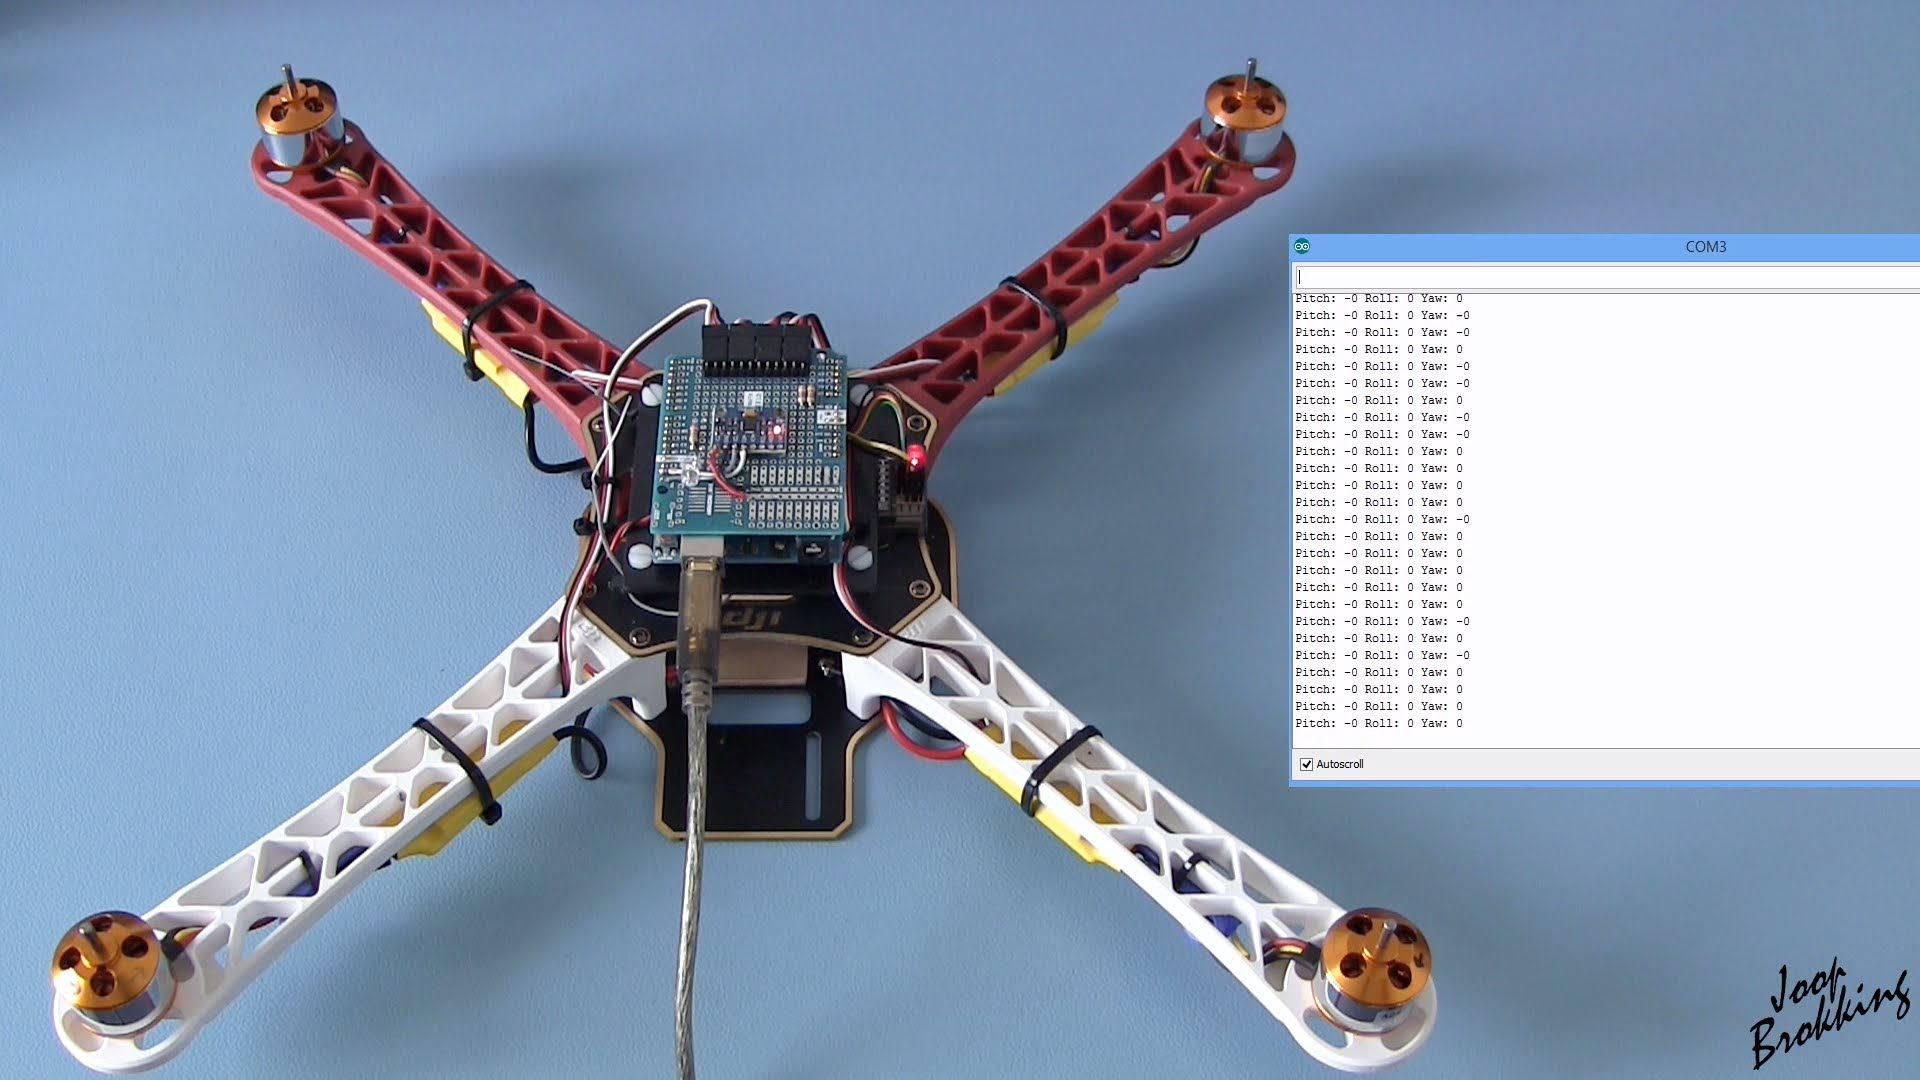 Ymfc Al Build Your Own Self Leveling Arduino Quadcopter With Flamewheel F450 Wiring Diagram Schemat